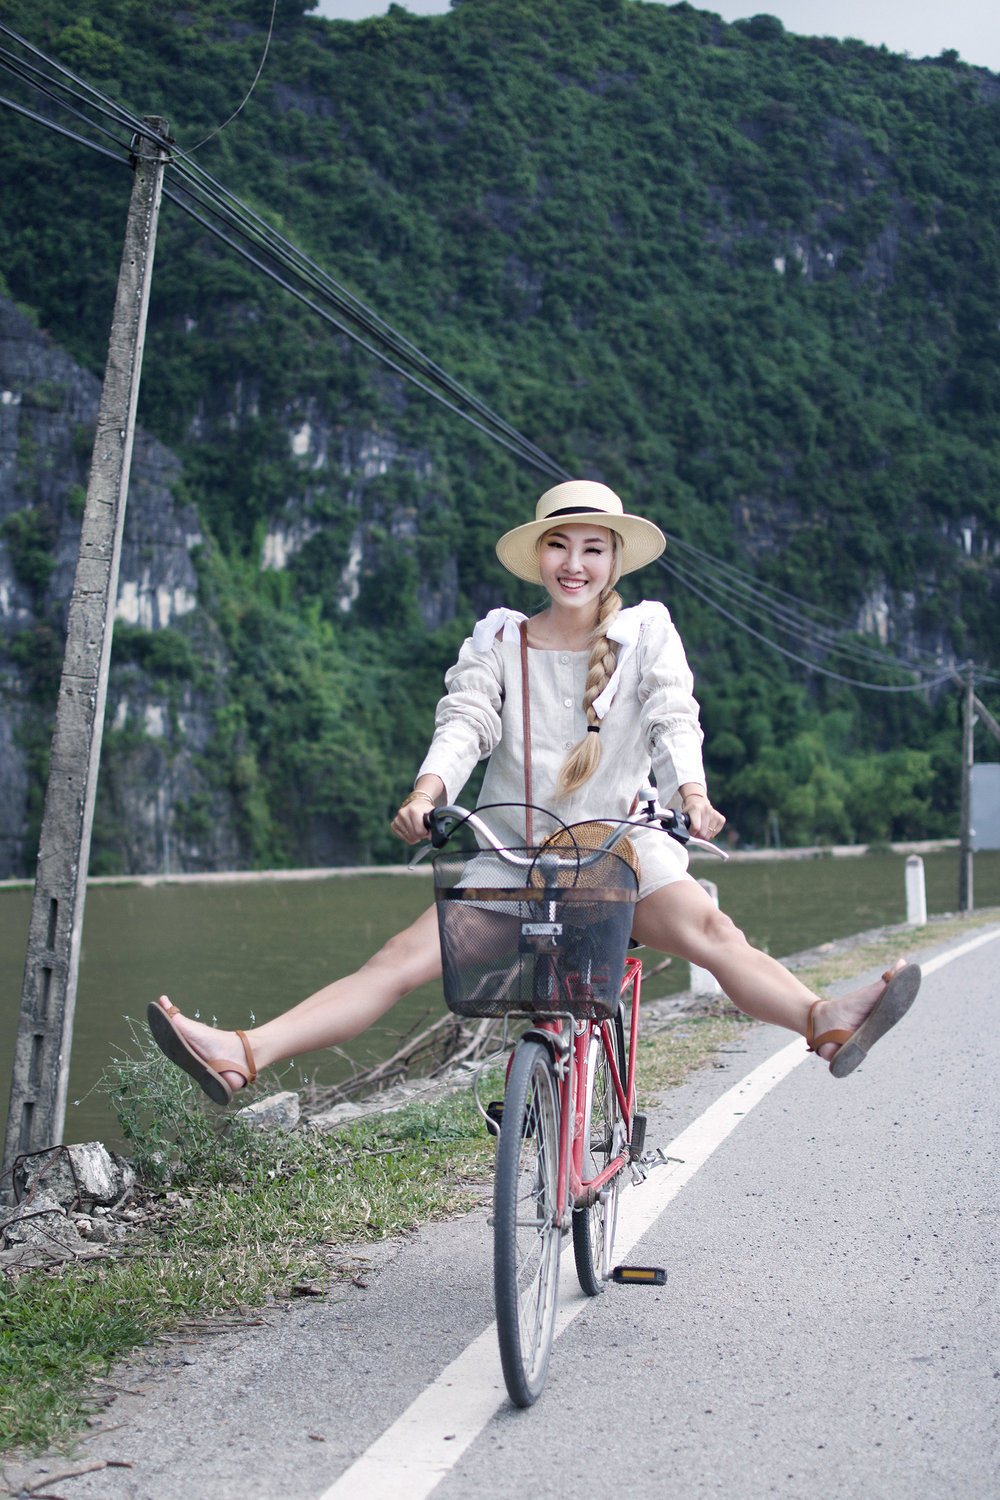 BIKE RIDING IN THE COUNTRYSIDE  You should definitely rent a bike or scooter to explore Ninh Binh, as most sites are pretty close to each other. Rentals are usually available at or near your hotel, near tourist sites, and near restaurants and shops.